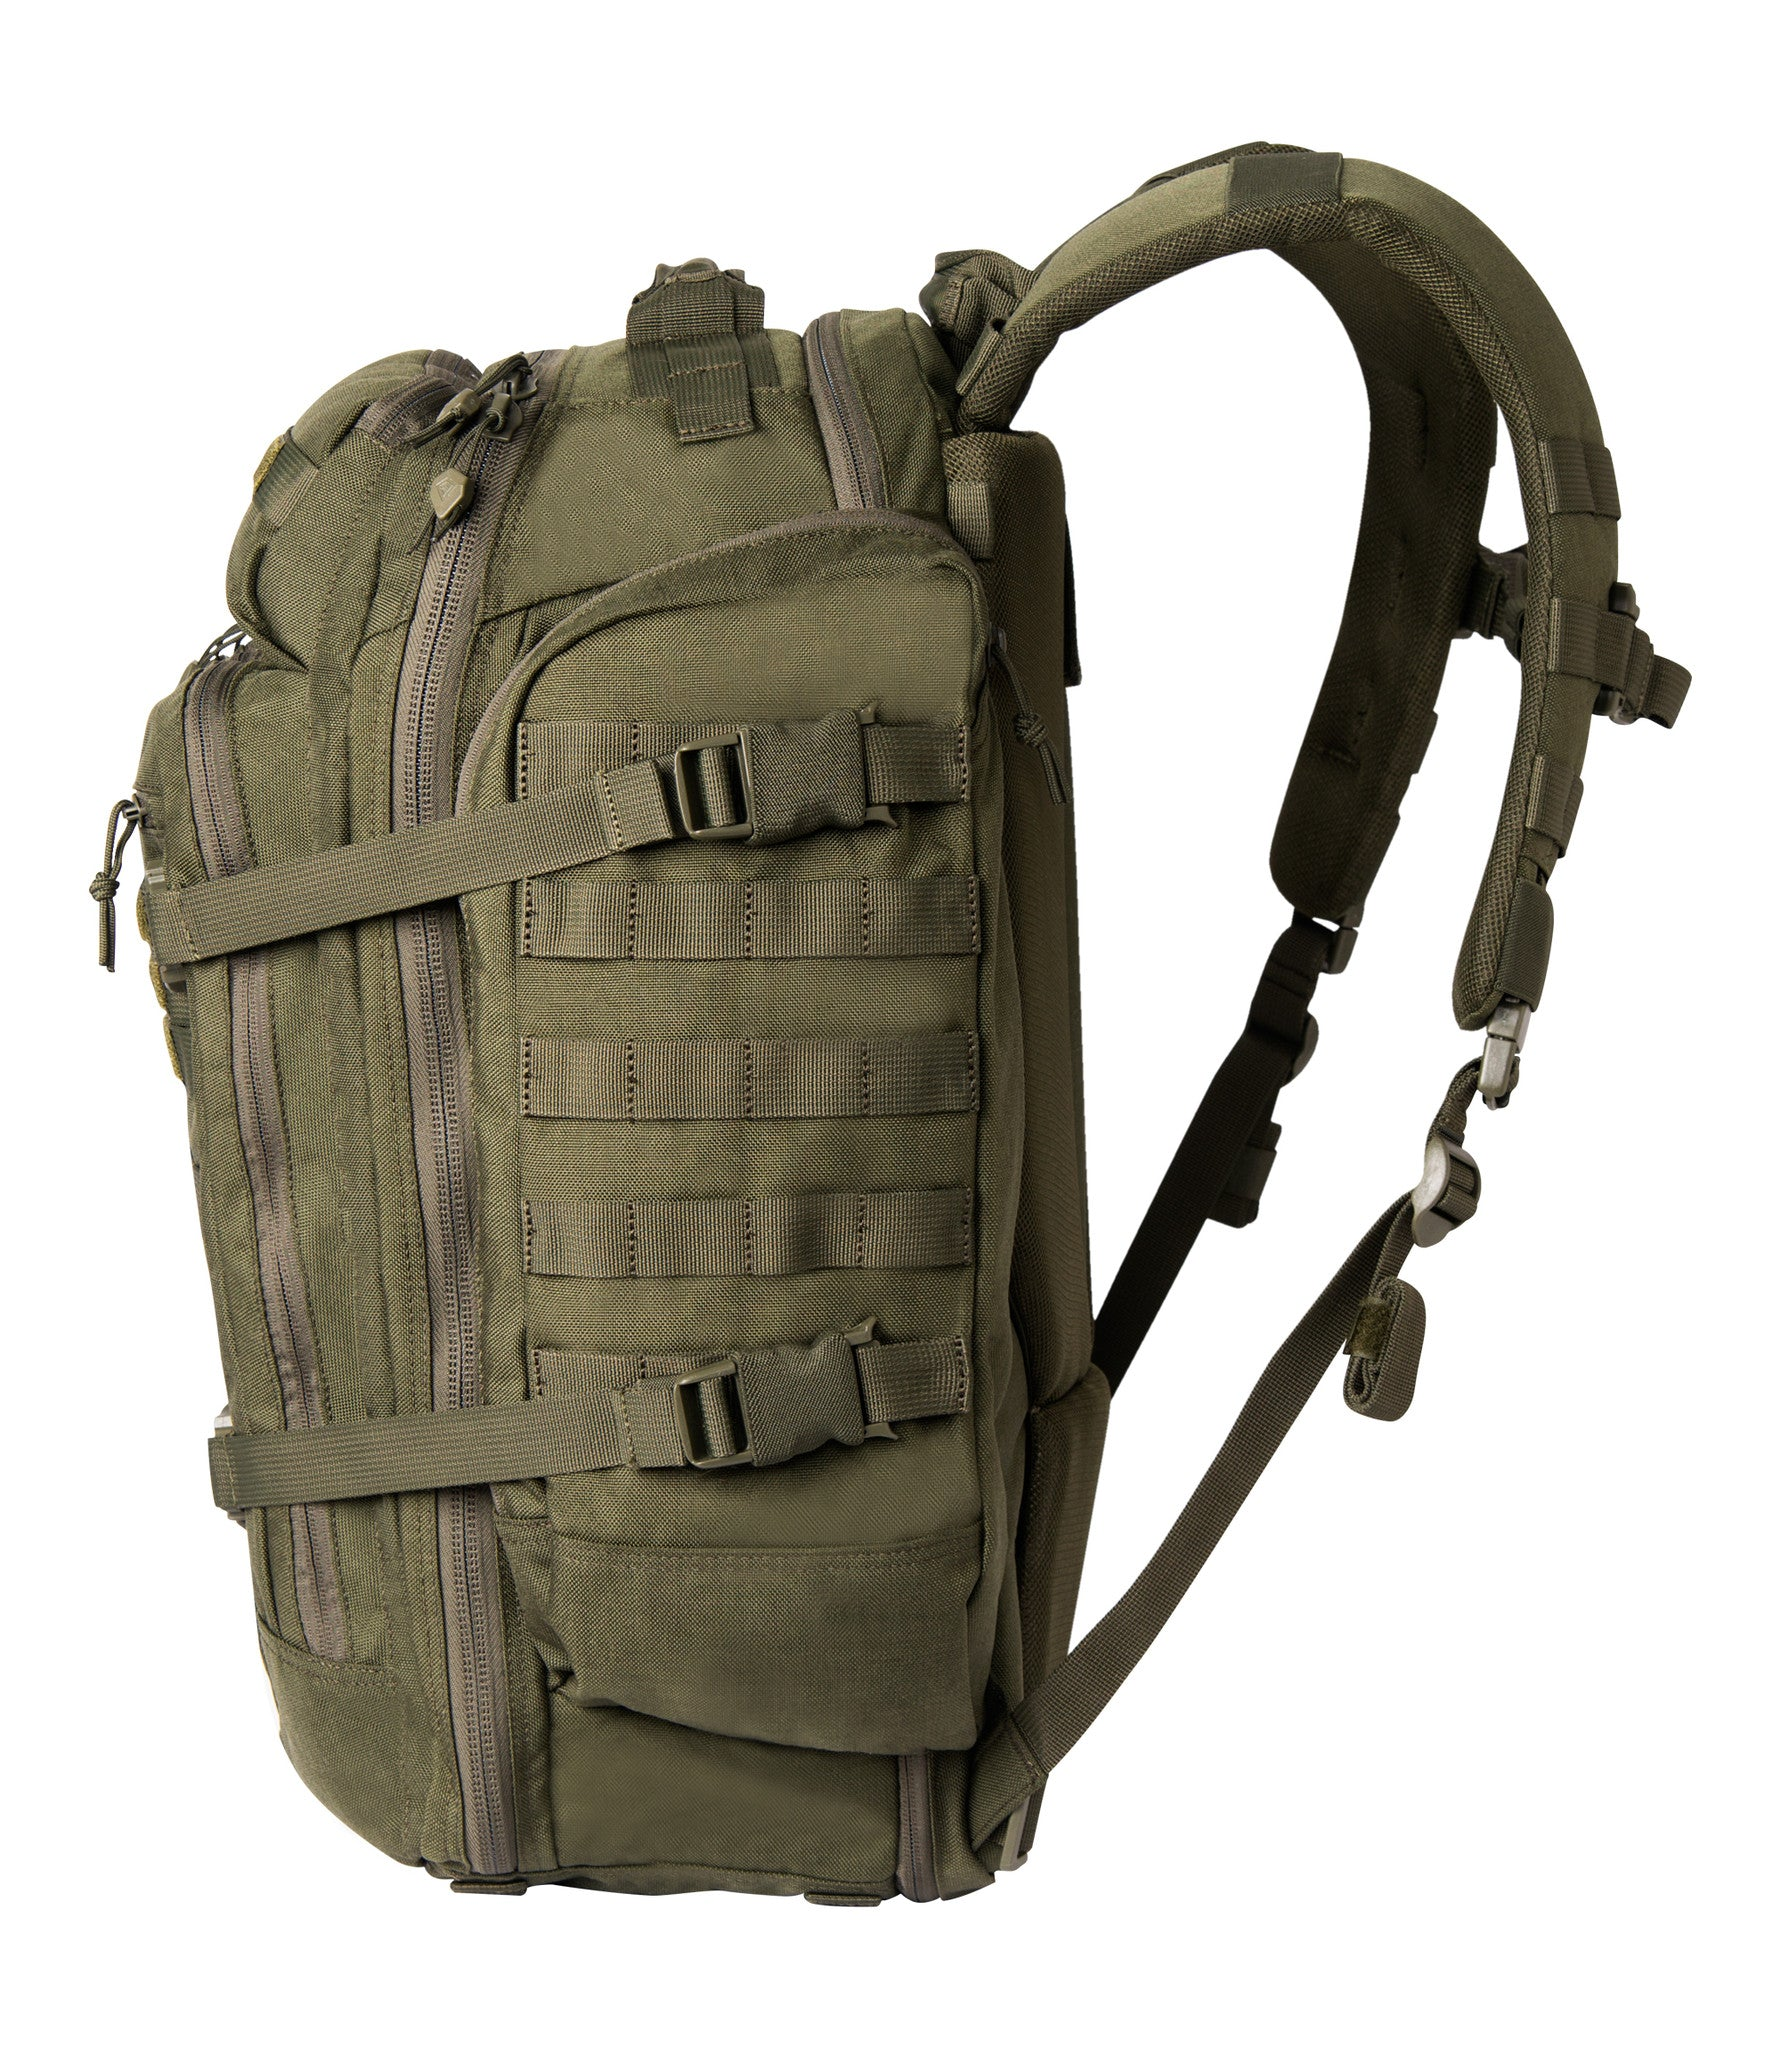 efa6a75672ff Specialist 3-Day Backpack